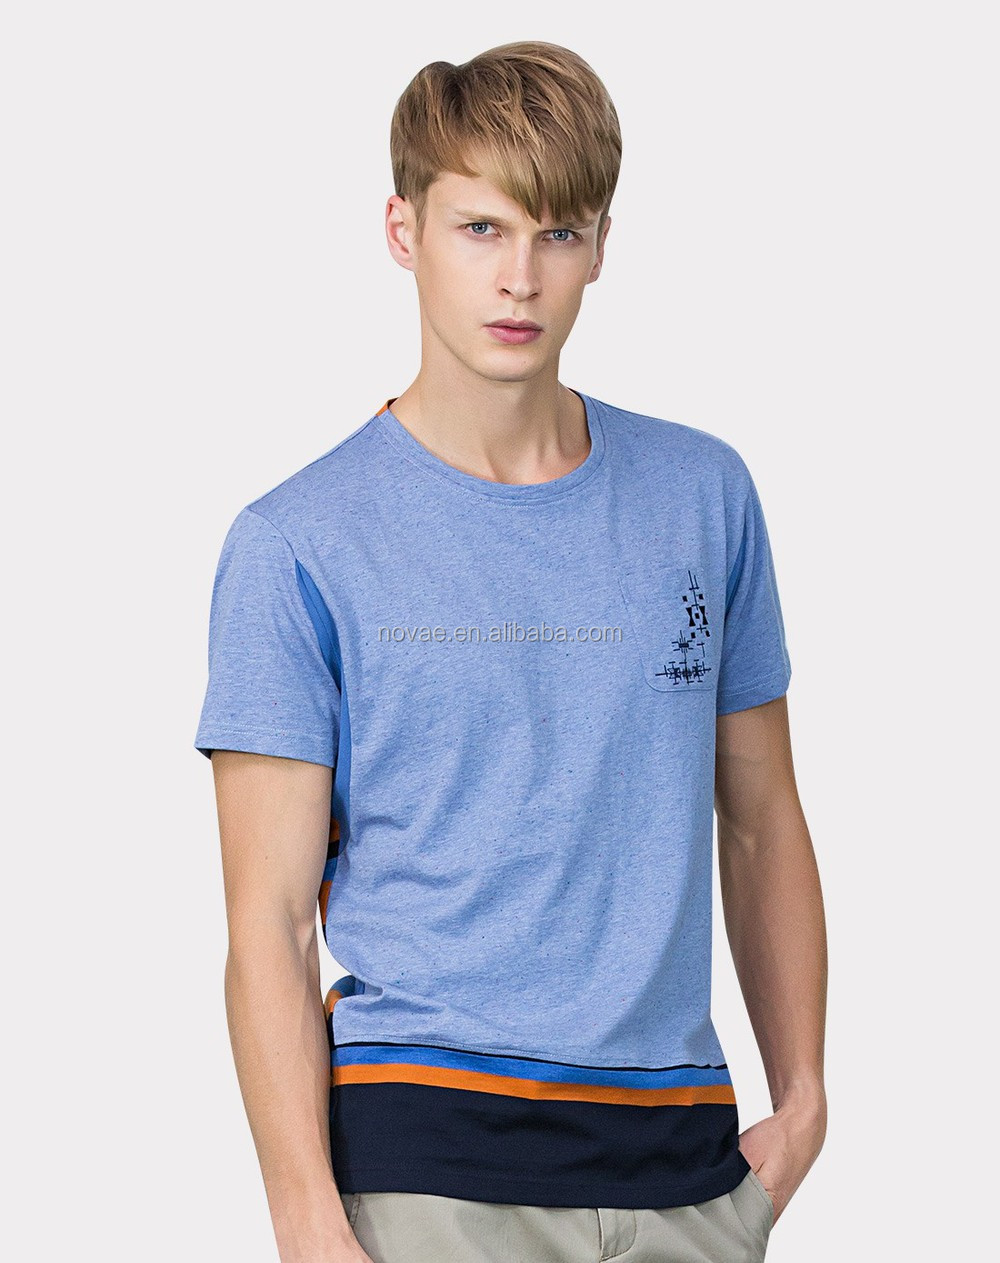 100 Ring Spun Cotton T Shirt Blank Pocket T Shirt